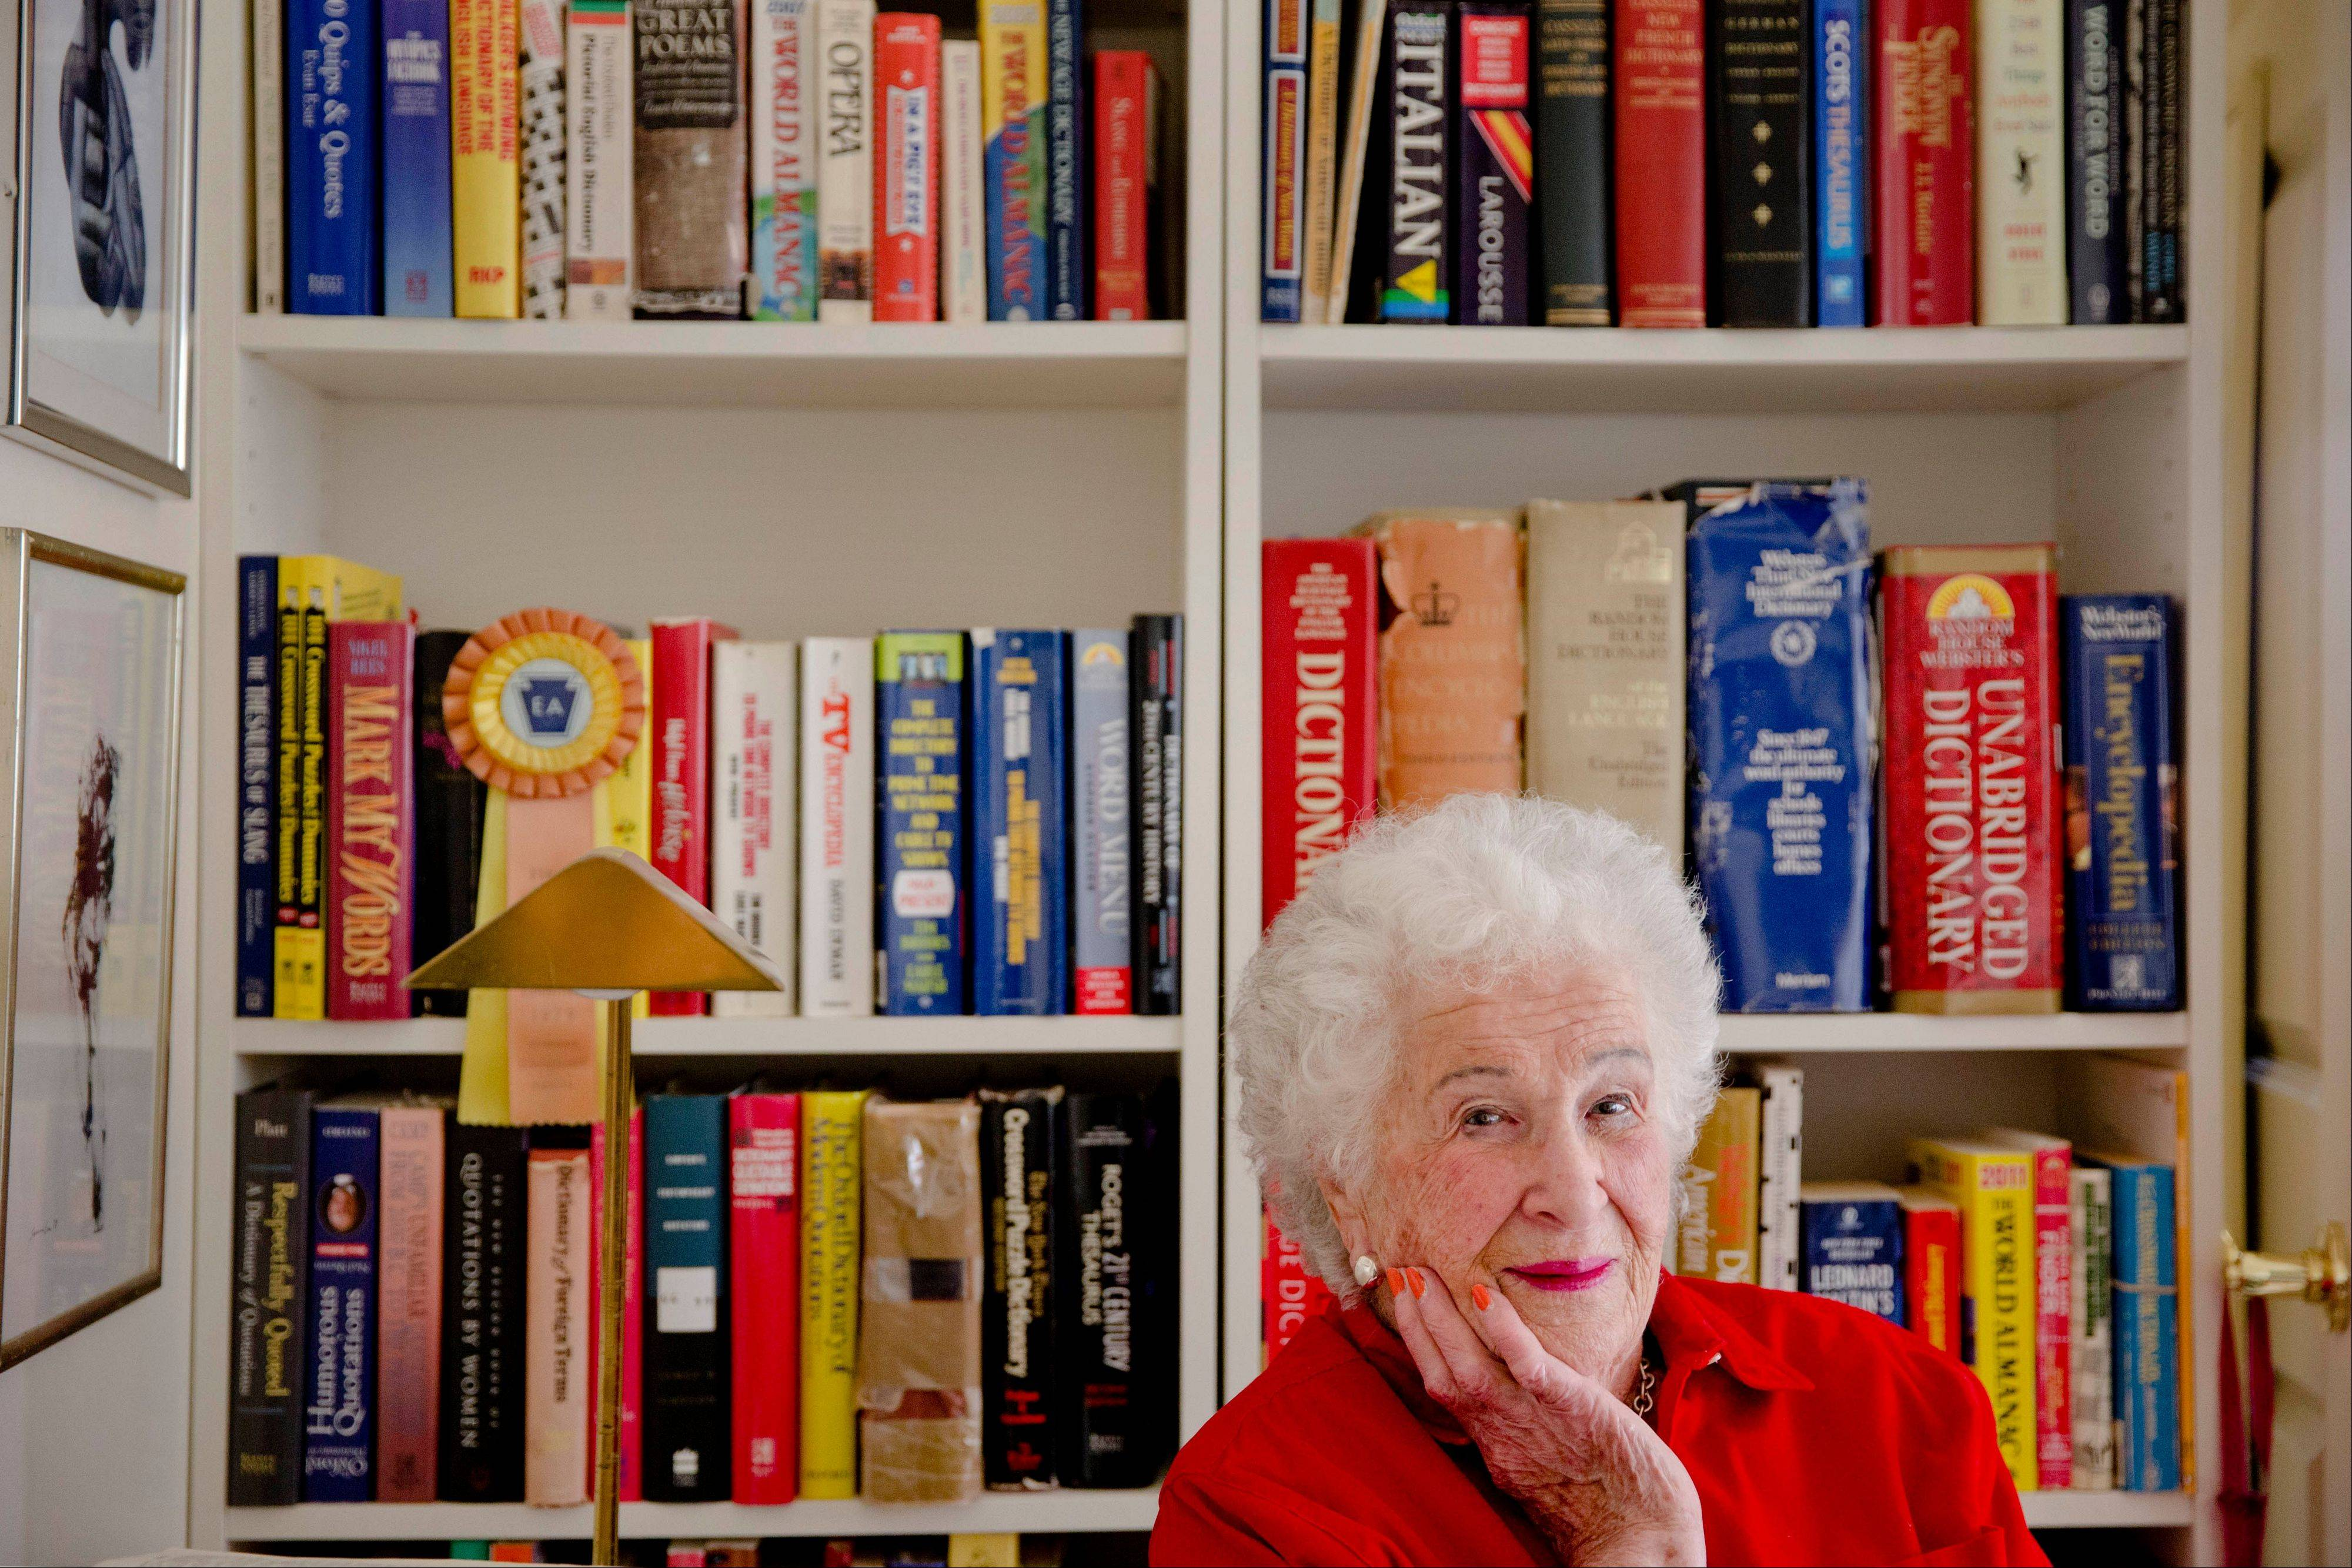 Longtime crossword constructor Bernice Gordon was born on Jan. 11, 1914. The New York Times is scheduled to publish one of her puzzles, making her the first centenarian ever to have a grid printed in the paper. Gordon�s feat comes not long after the centennial of the puzzle itself.